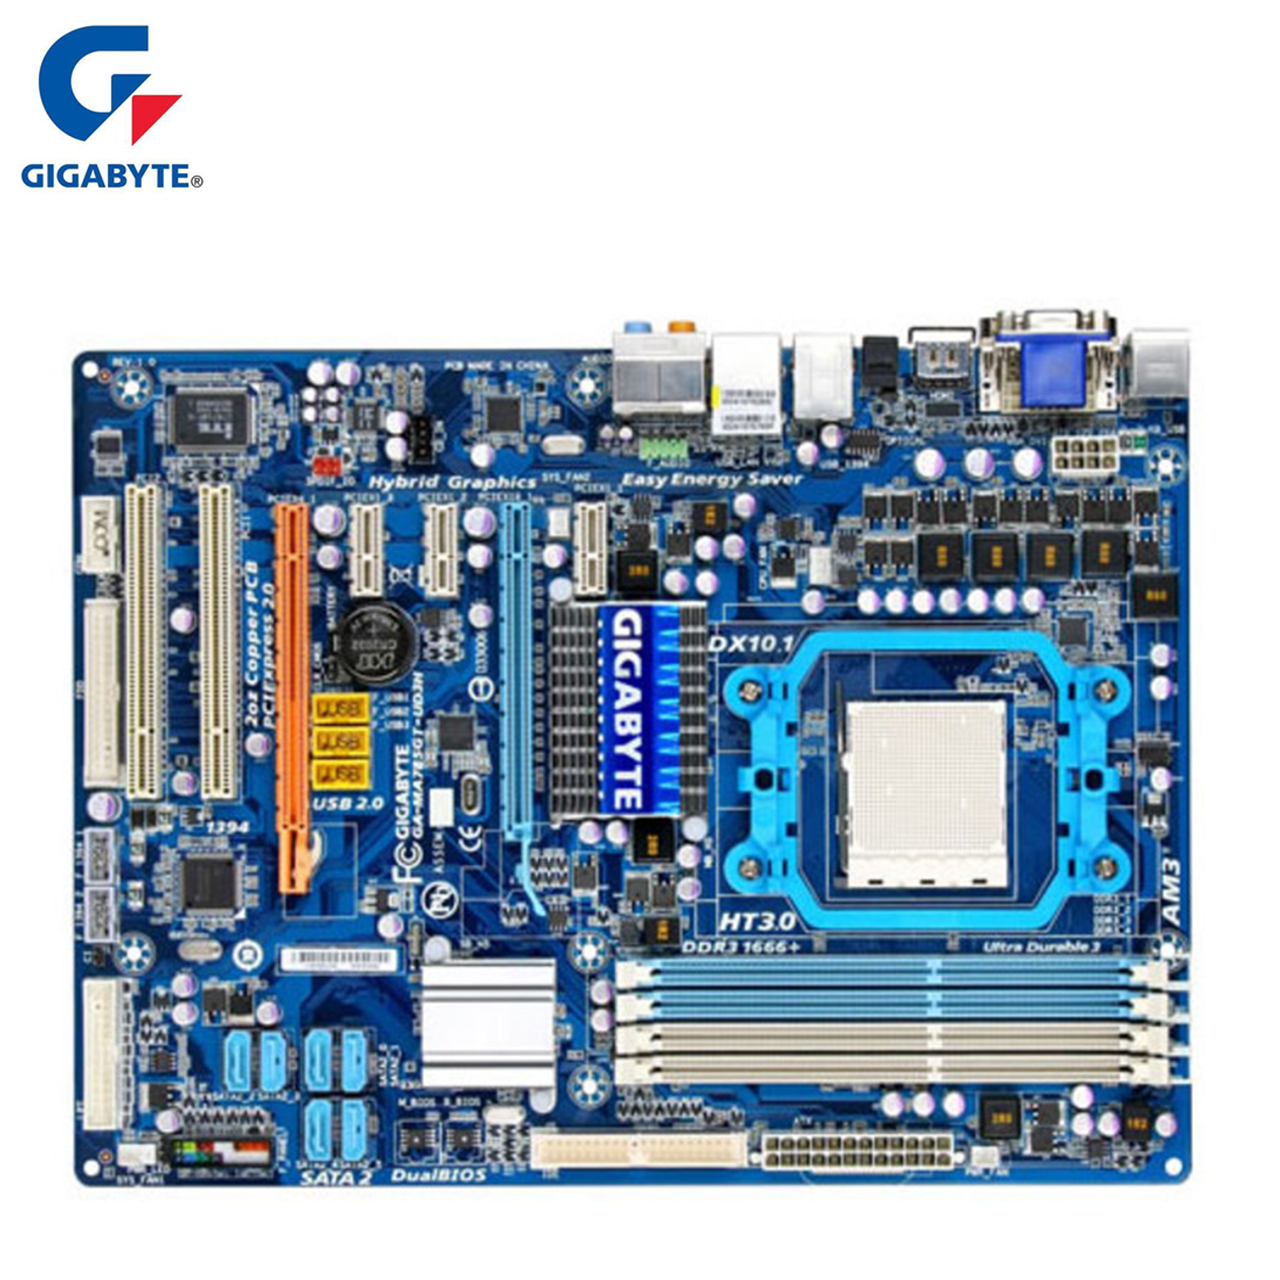 Gigabyte GA-MA785GT-UD3H Motherboard For AMD 785G DDR3 USB2.0 16GB Socket AM3 MA785GT UD3H Desktop Mainboard Systemboard Used gigabyte ga ma785gmt us2h original used desktop motherboard amd 785g socket am3 ddr3 sata2 usb2 0 micro atx